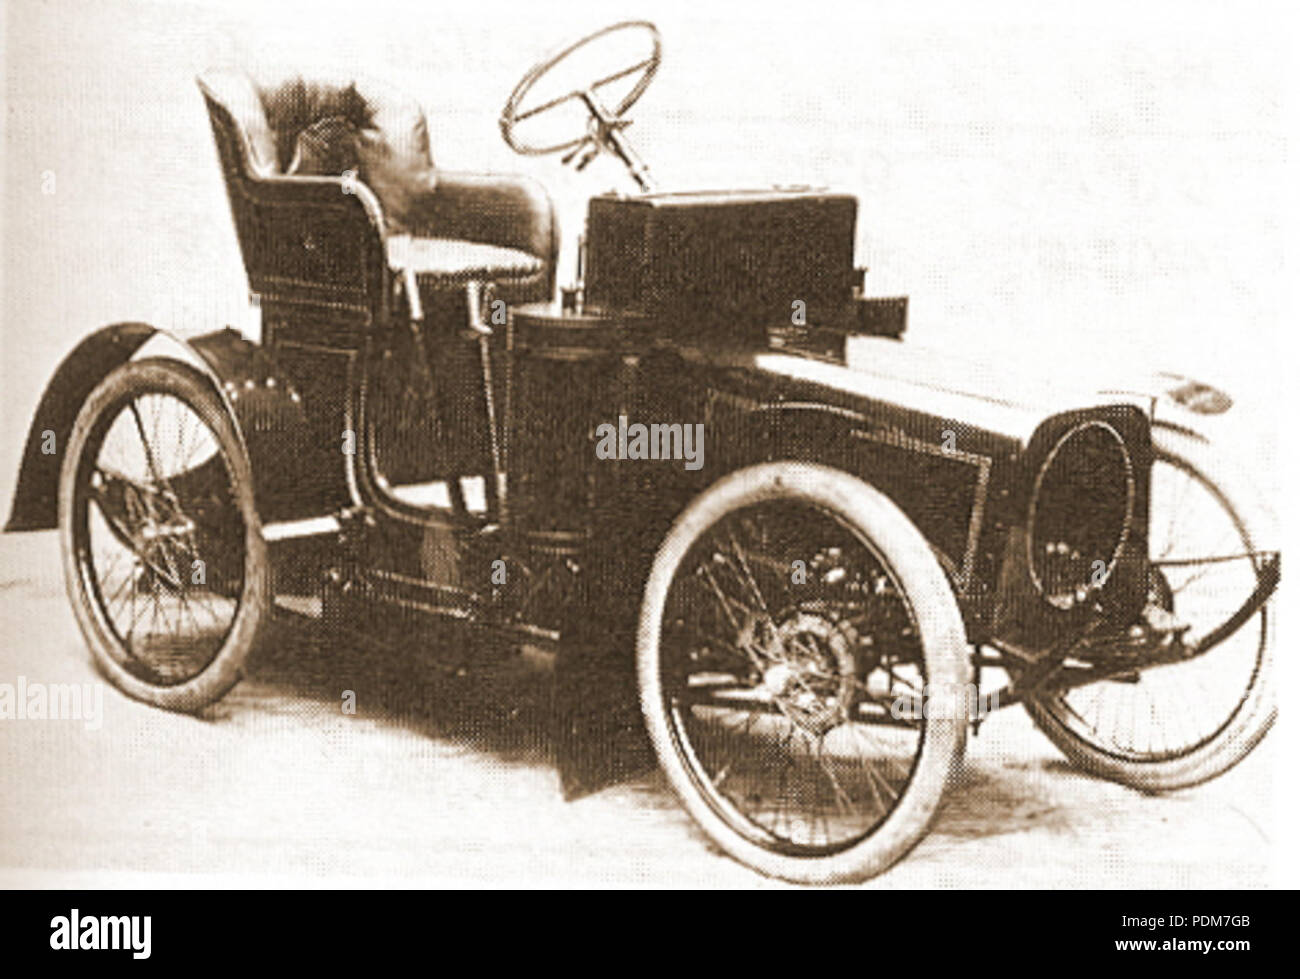 225 MHV Phoenix 6 hp Runabout 1906 - Stock Image